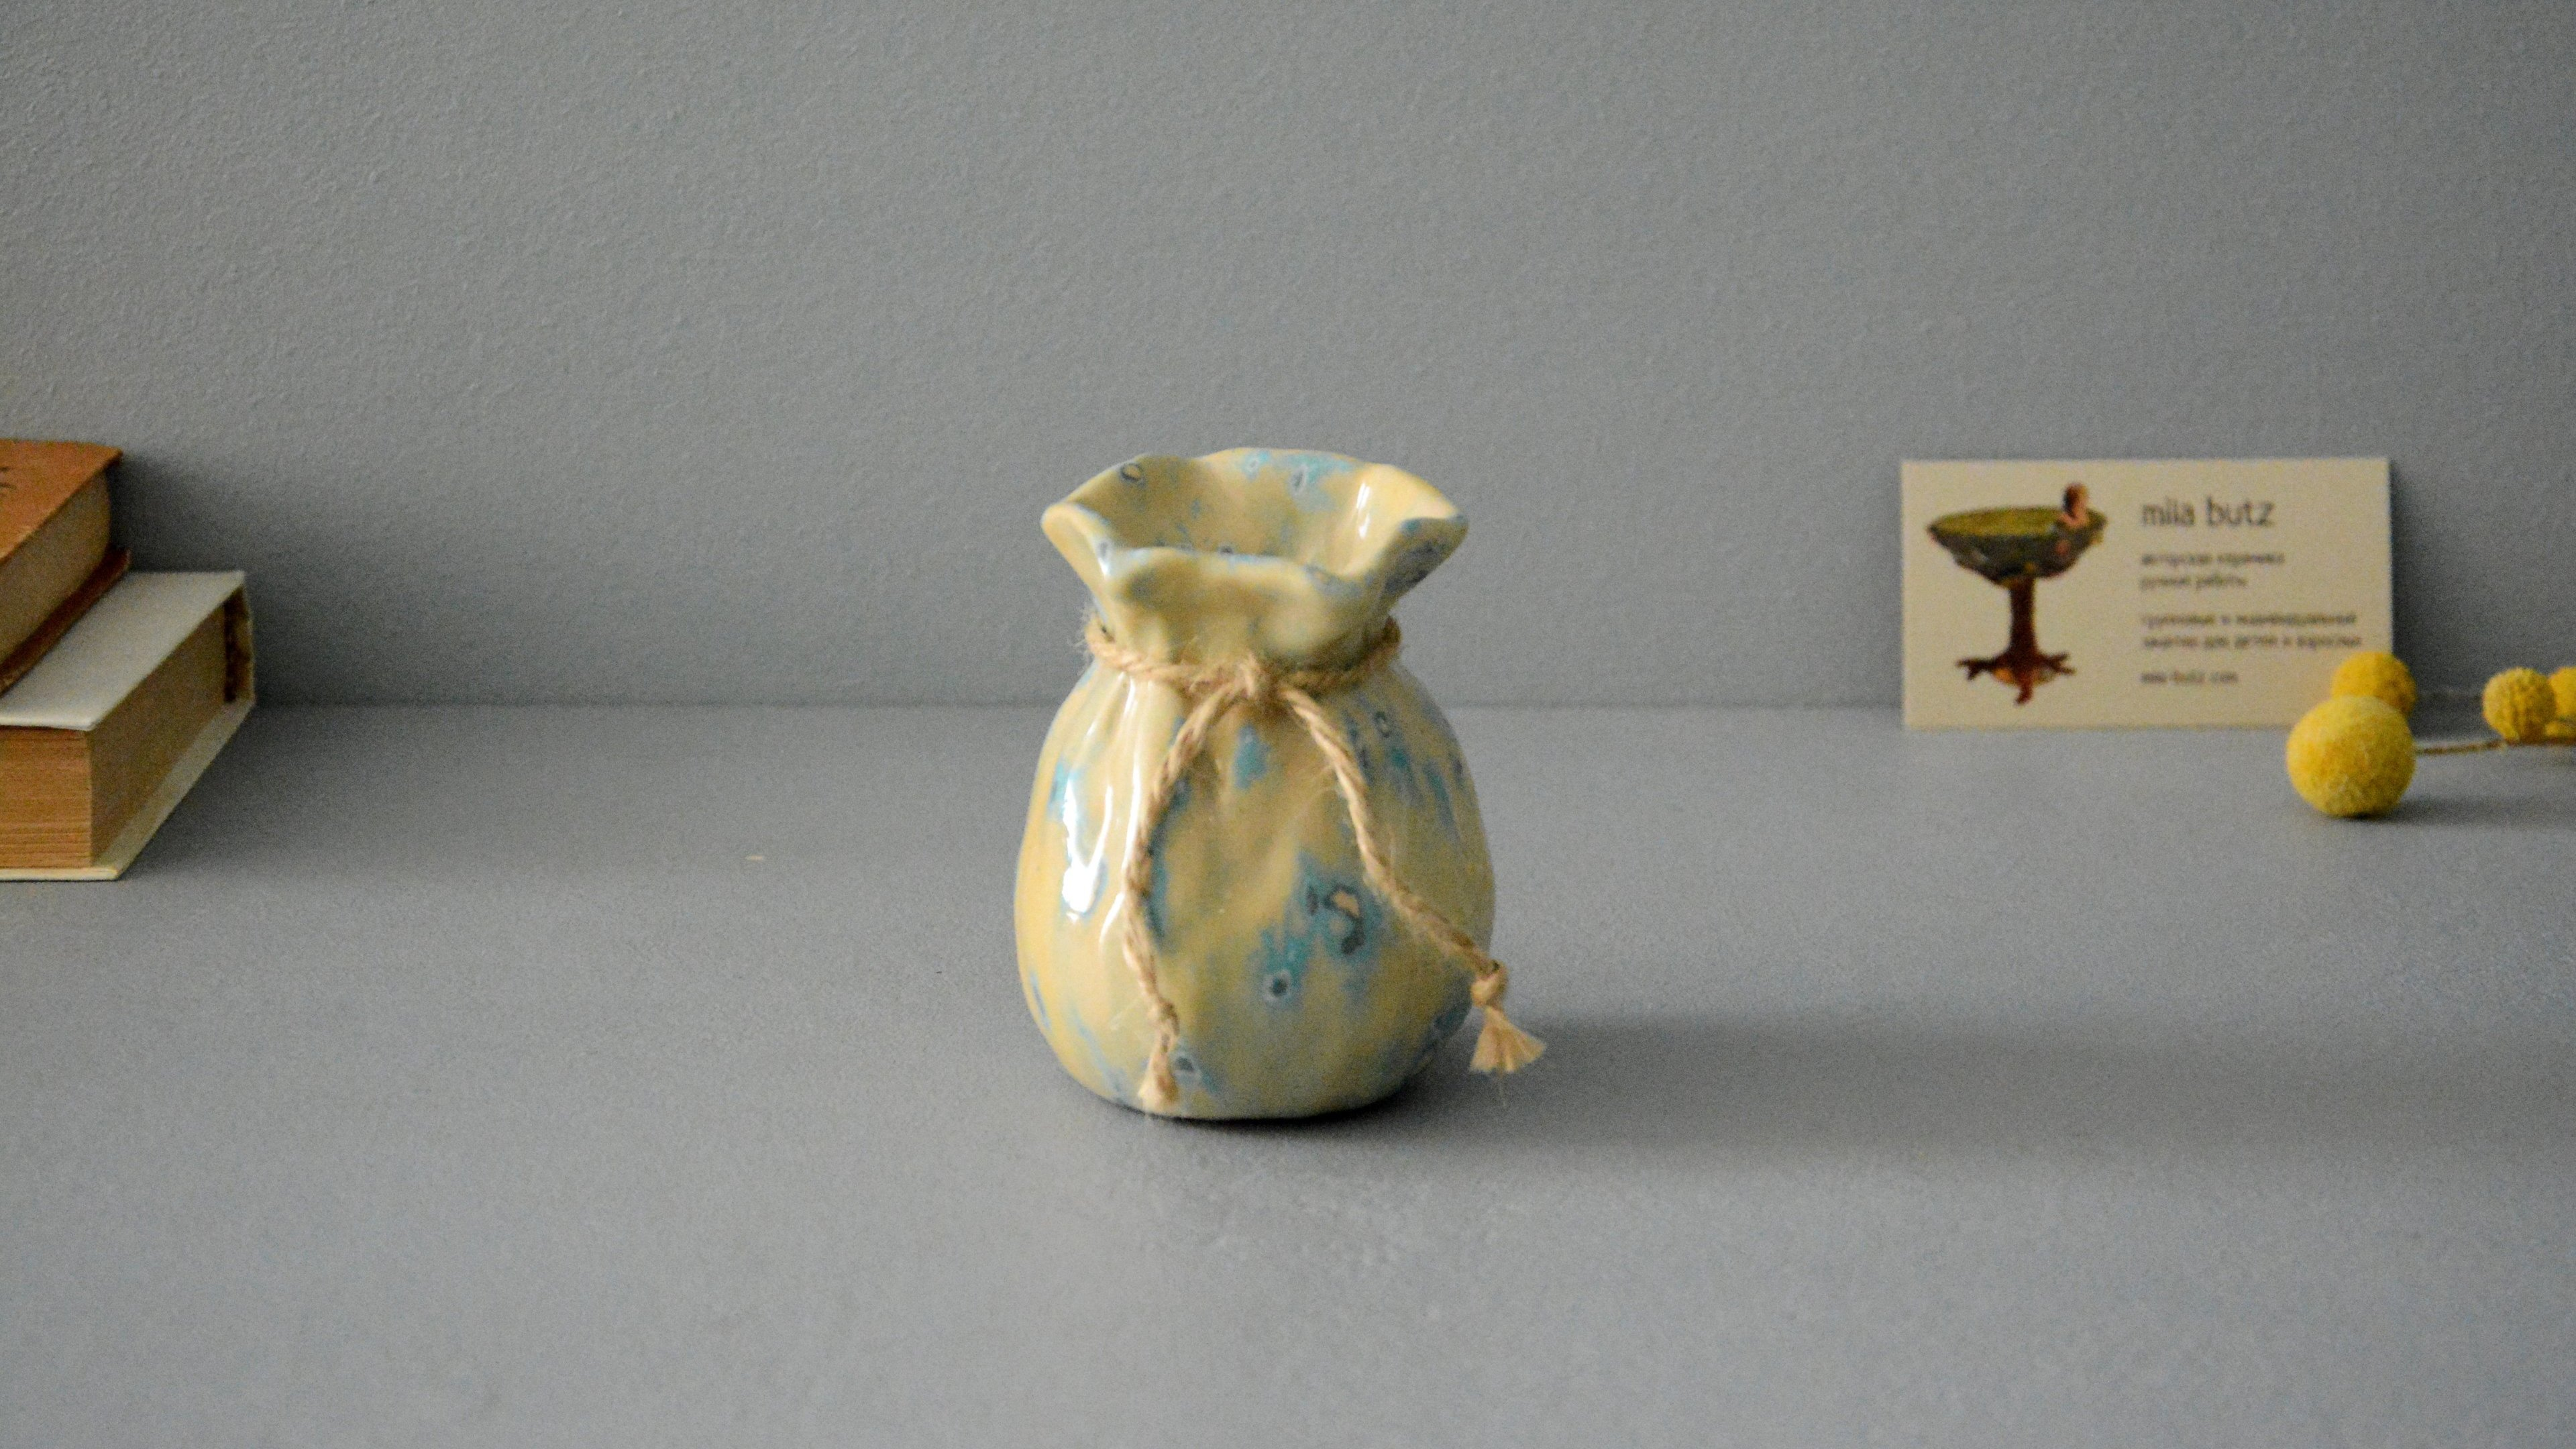 Small Vase or flowers «Beige Bagful», height - 9 cm, color - beige. Photo 1407-3840-2160.